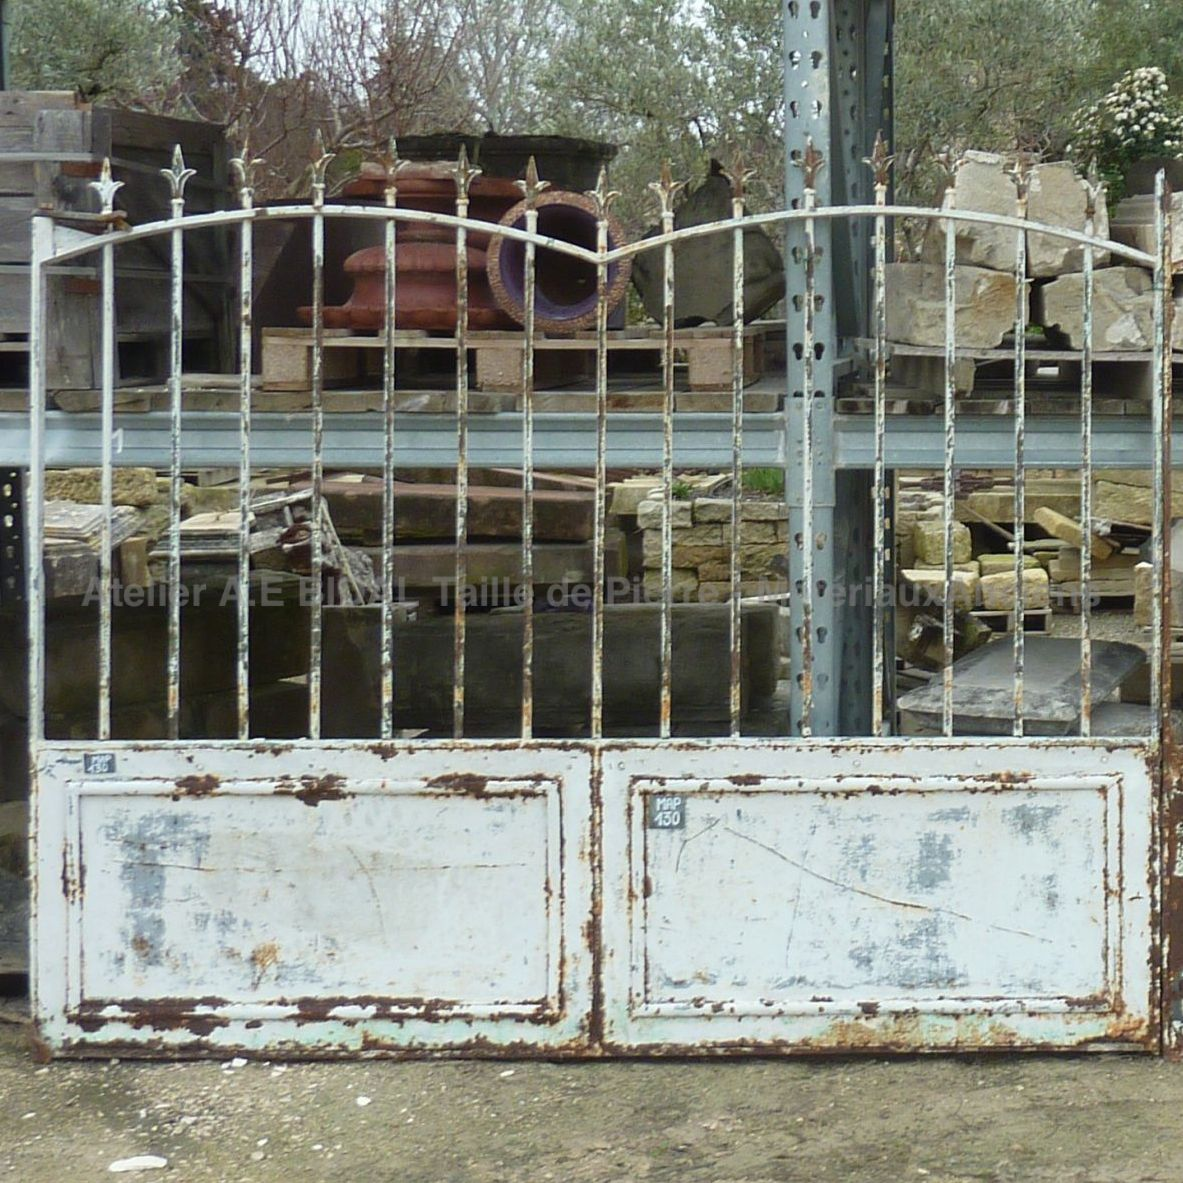 Antique gate made of wrought iron, white weathered by rust.